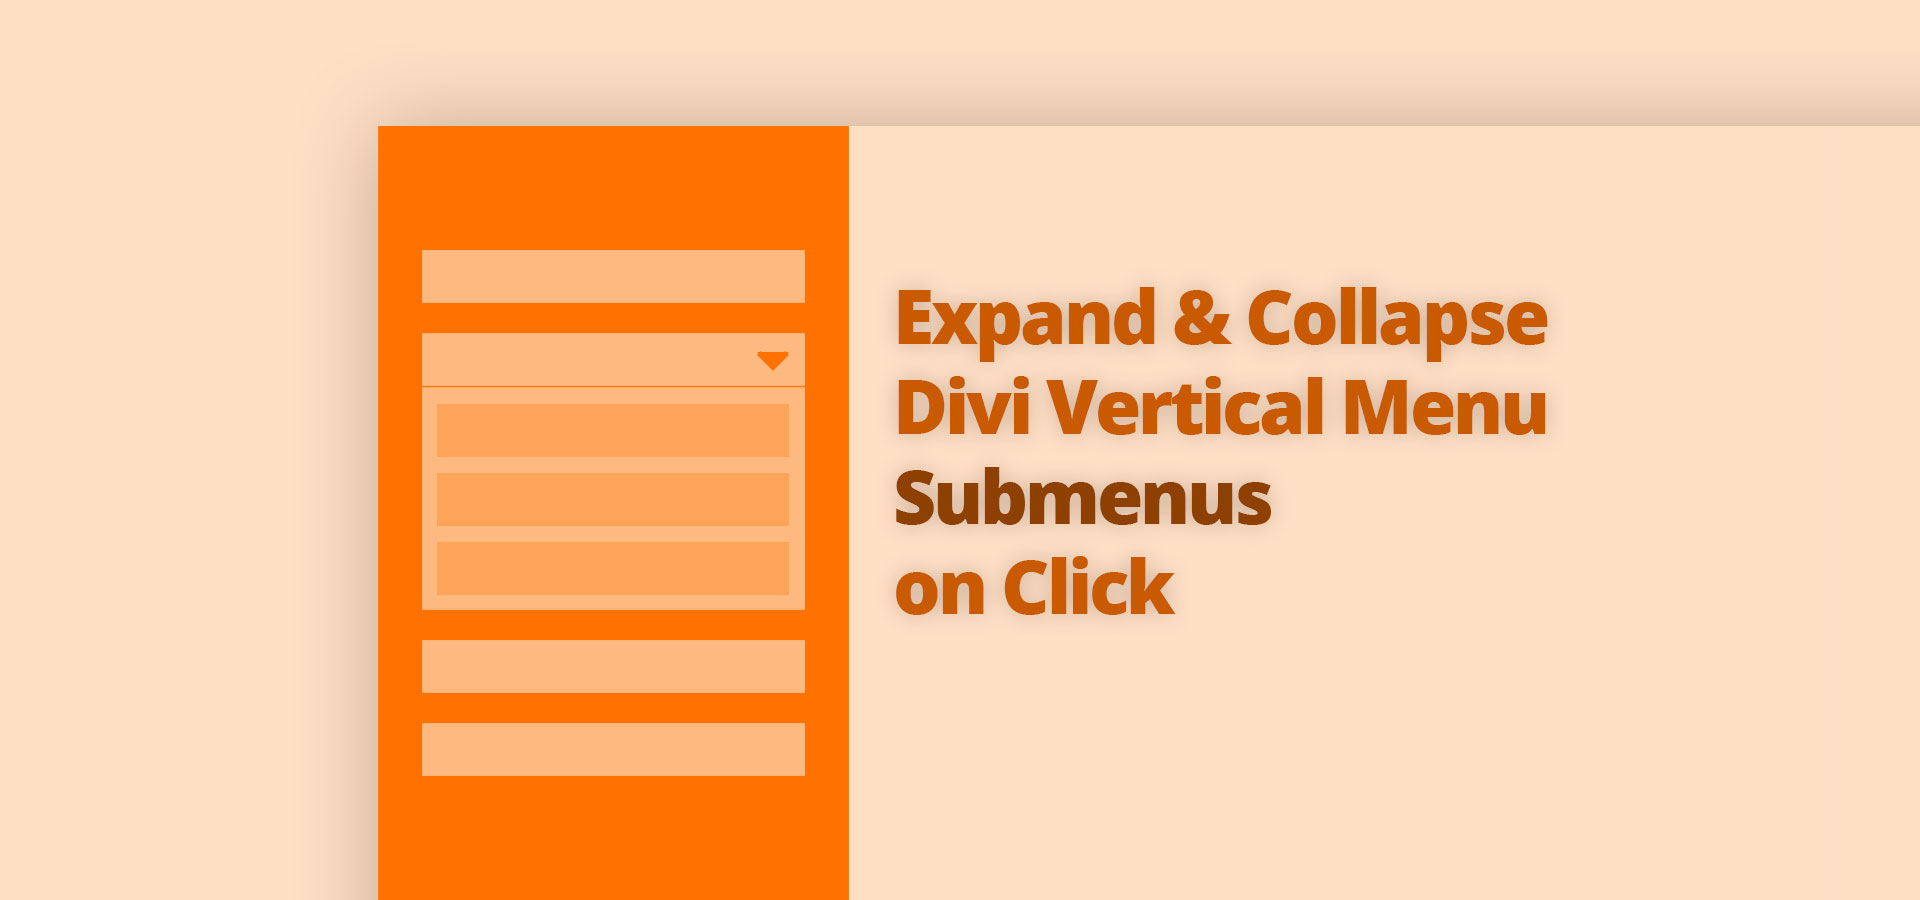 Expand and Collapse Divi Vertical Menu Submenus on Click - Divicio us